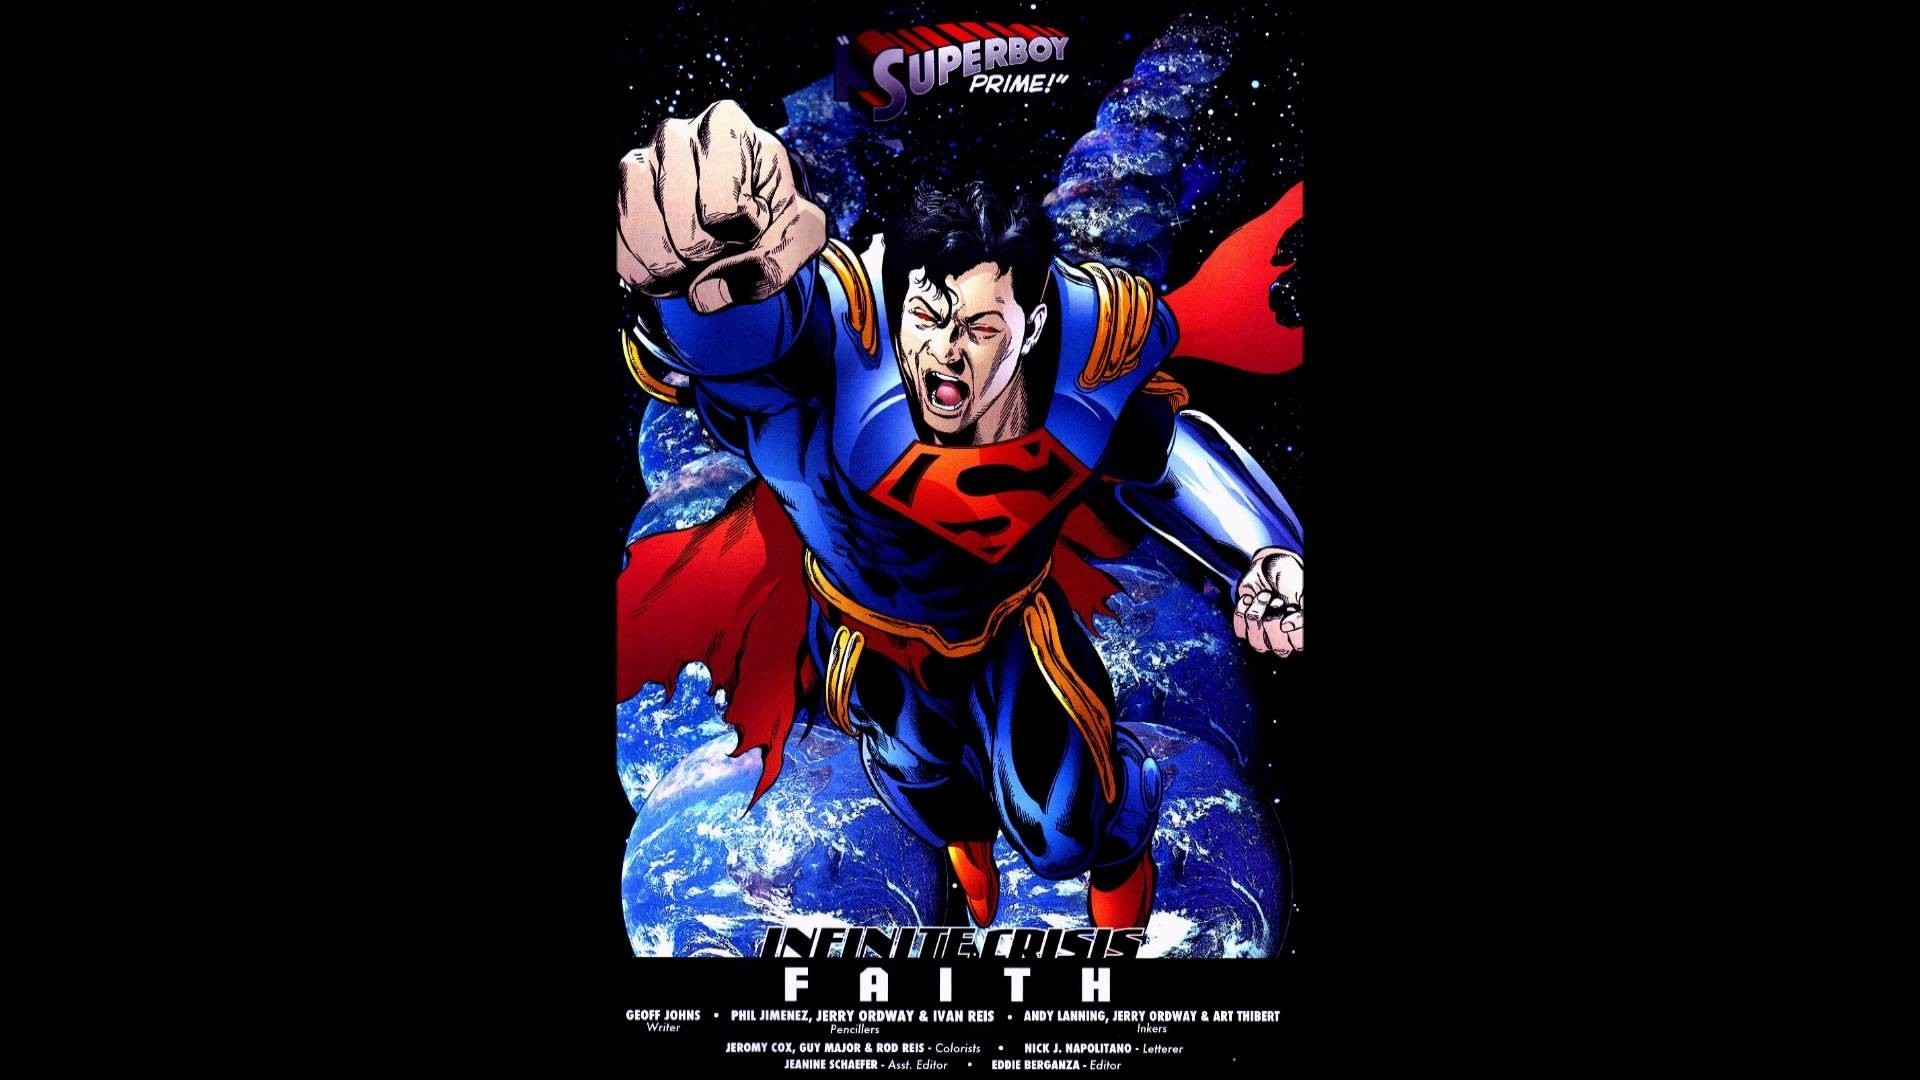 Res: 1920x1080, Superboy Wallpapers 17 - 1920 X 1080